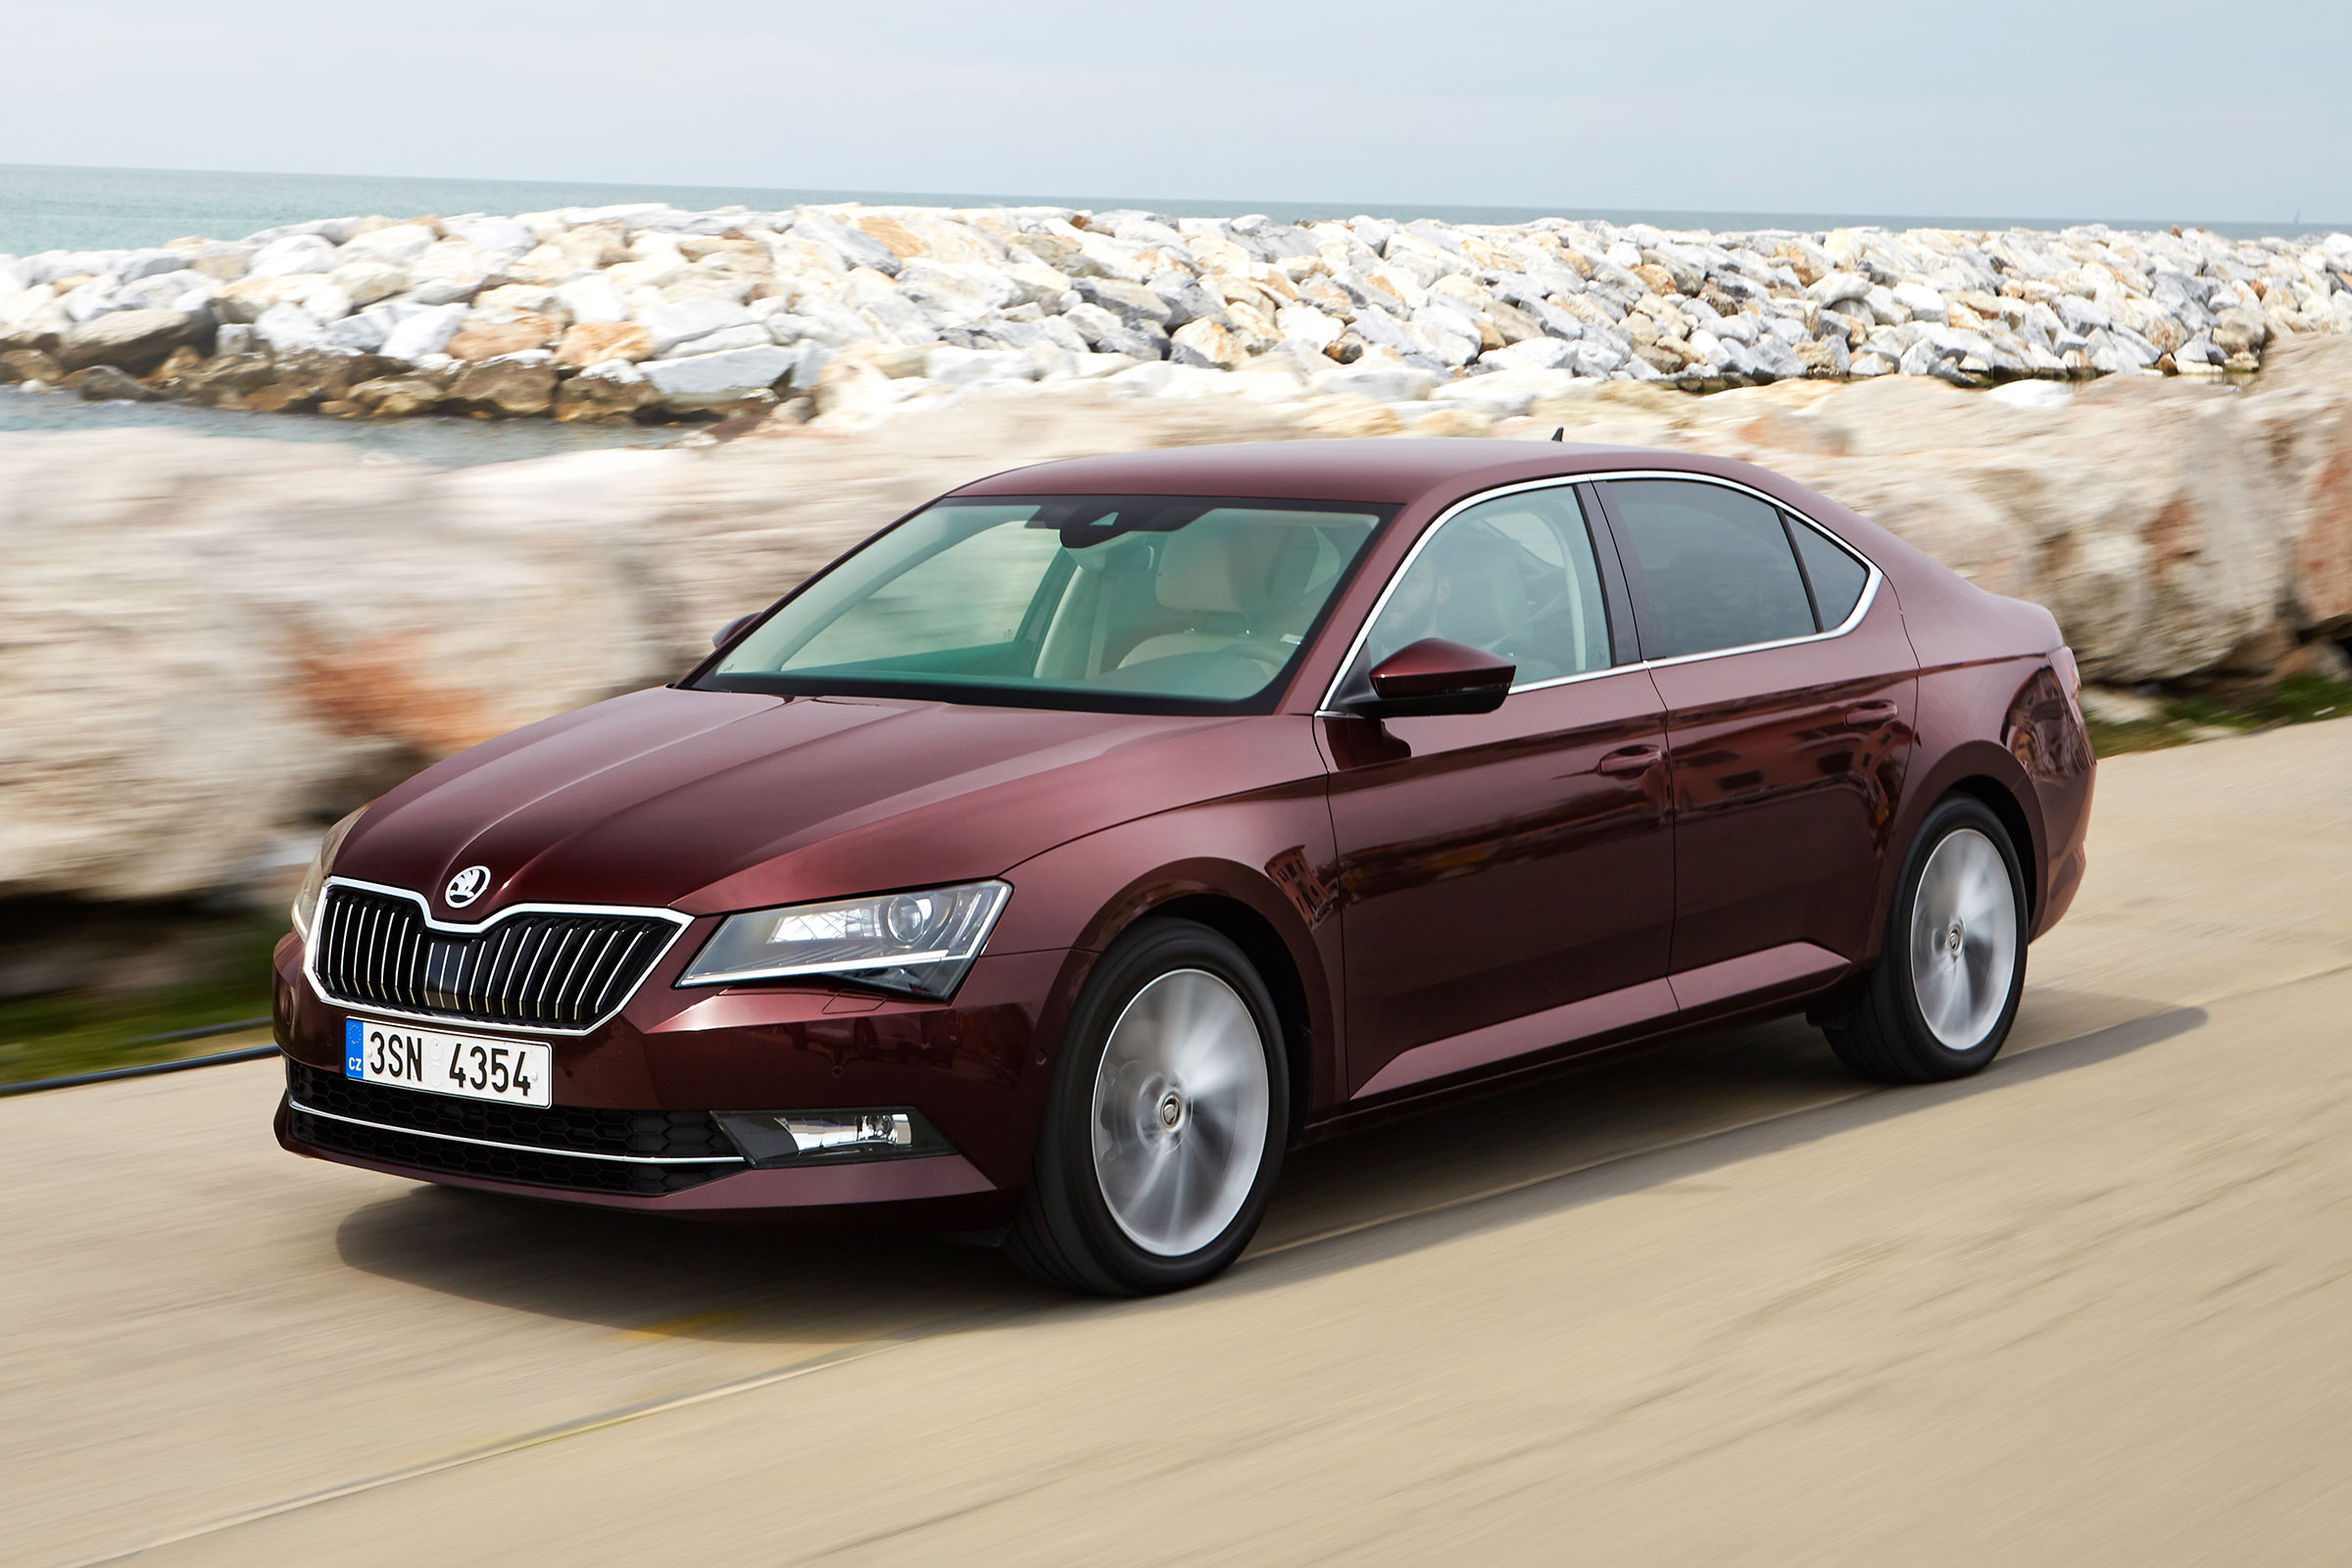 skoda superb 2015 hd wallpapers download. Black Bedroom Furniture Sets. Home Design Ideas